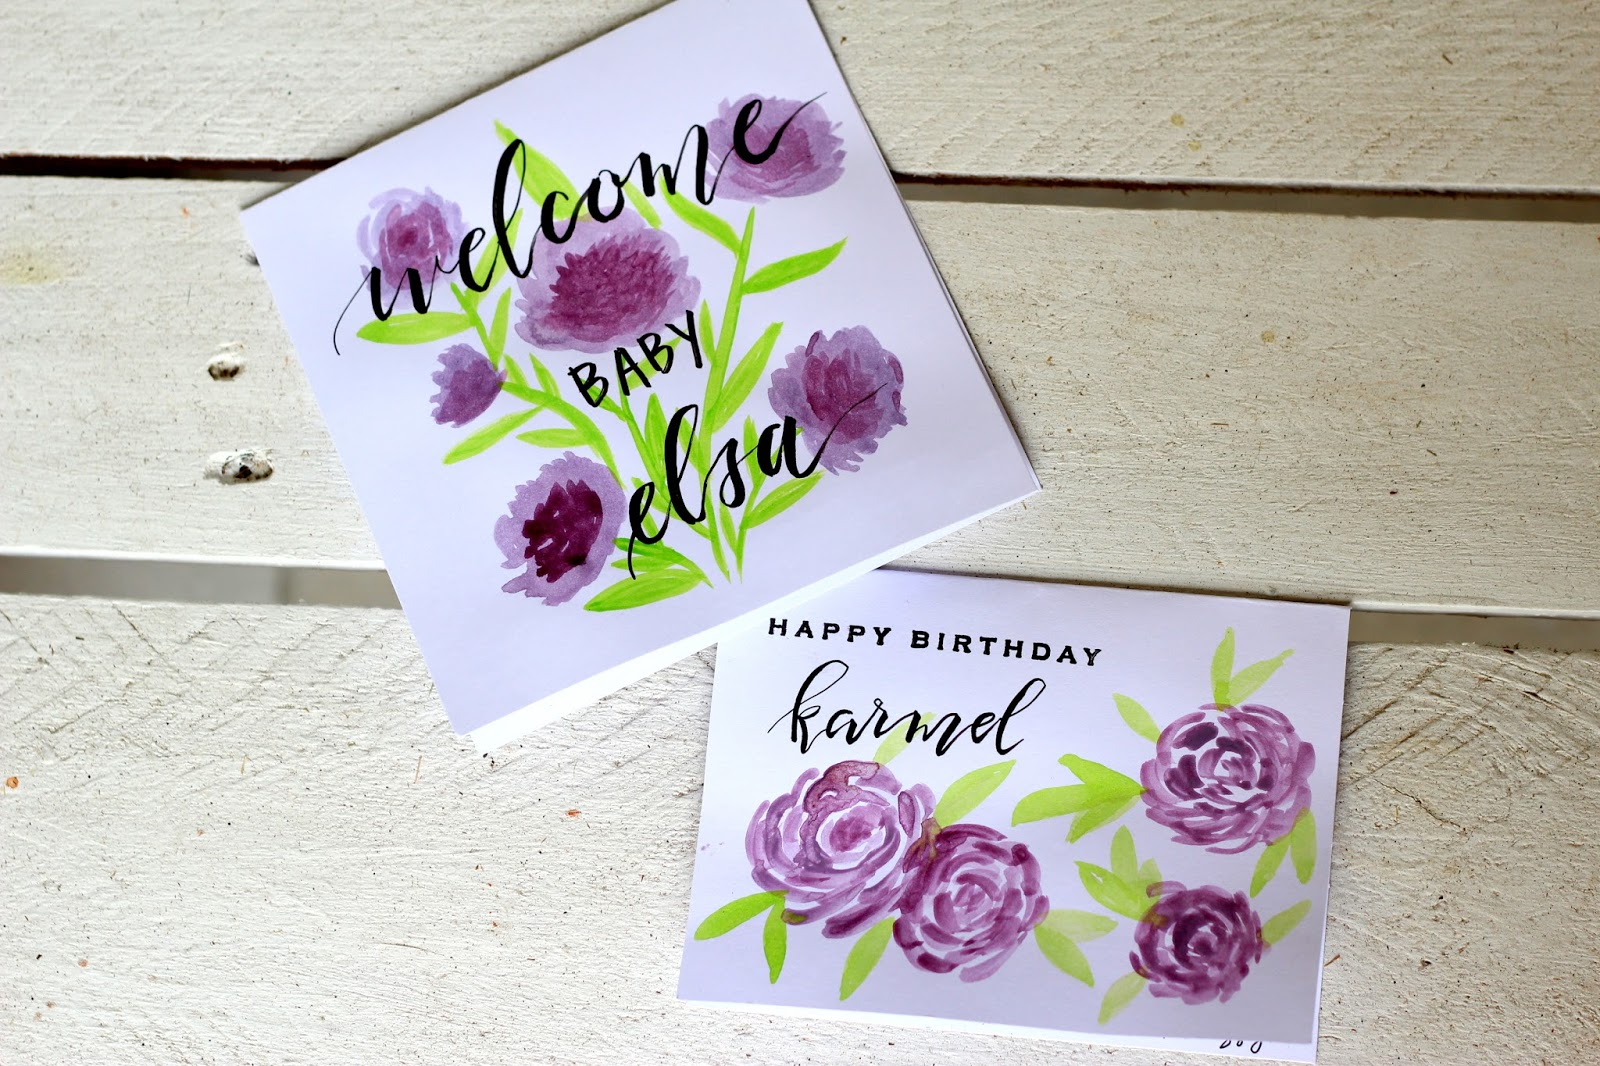 Doleenoted quilled nursery decor and watercolor greeting cards quilled nursery decor and watercolor greeting cards m4hsunfo